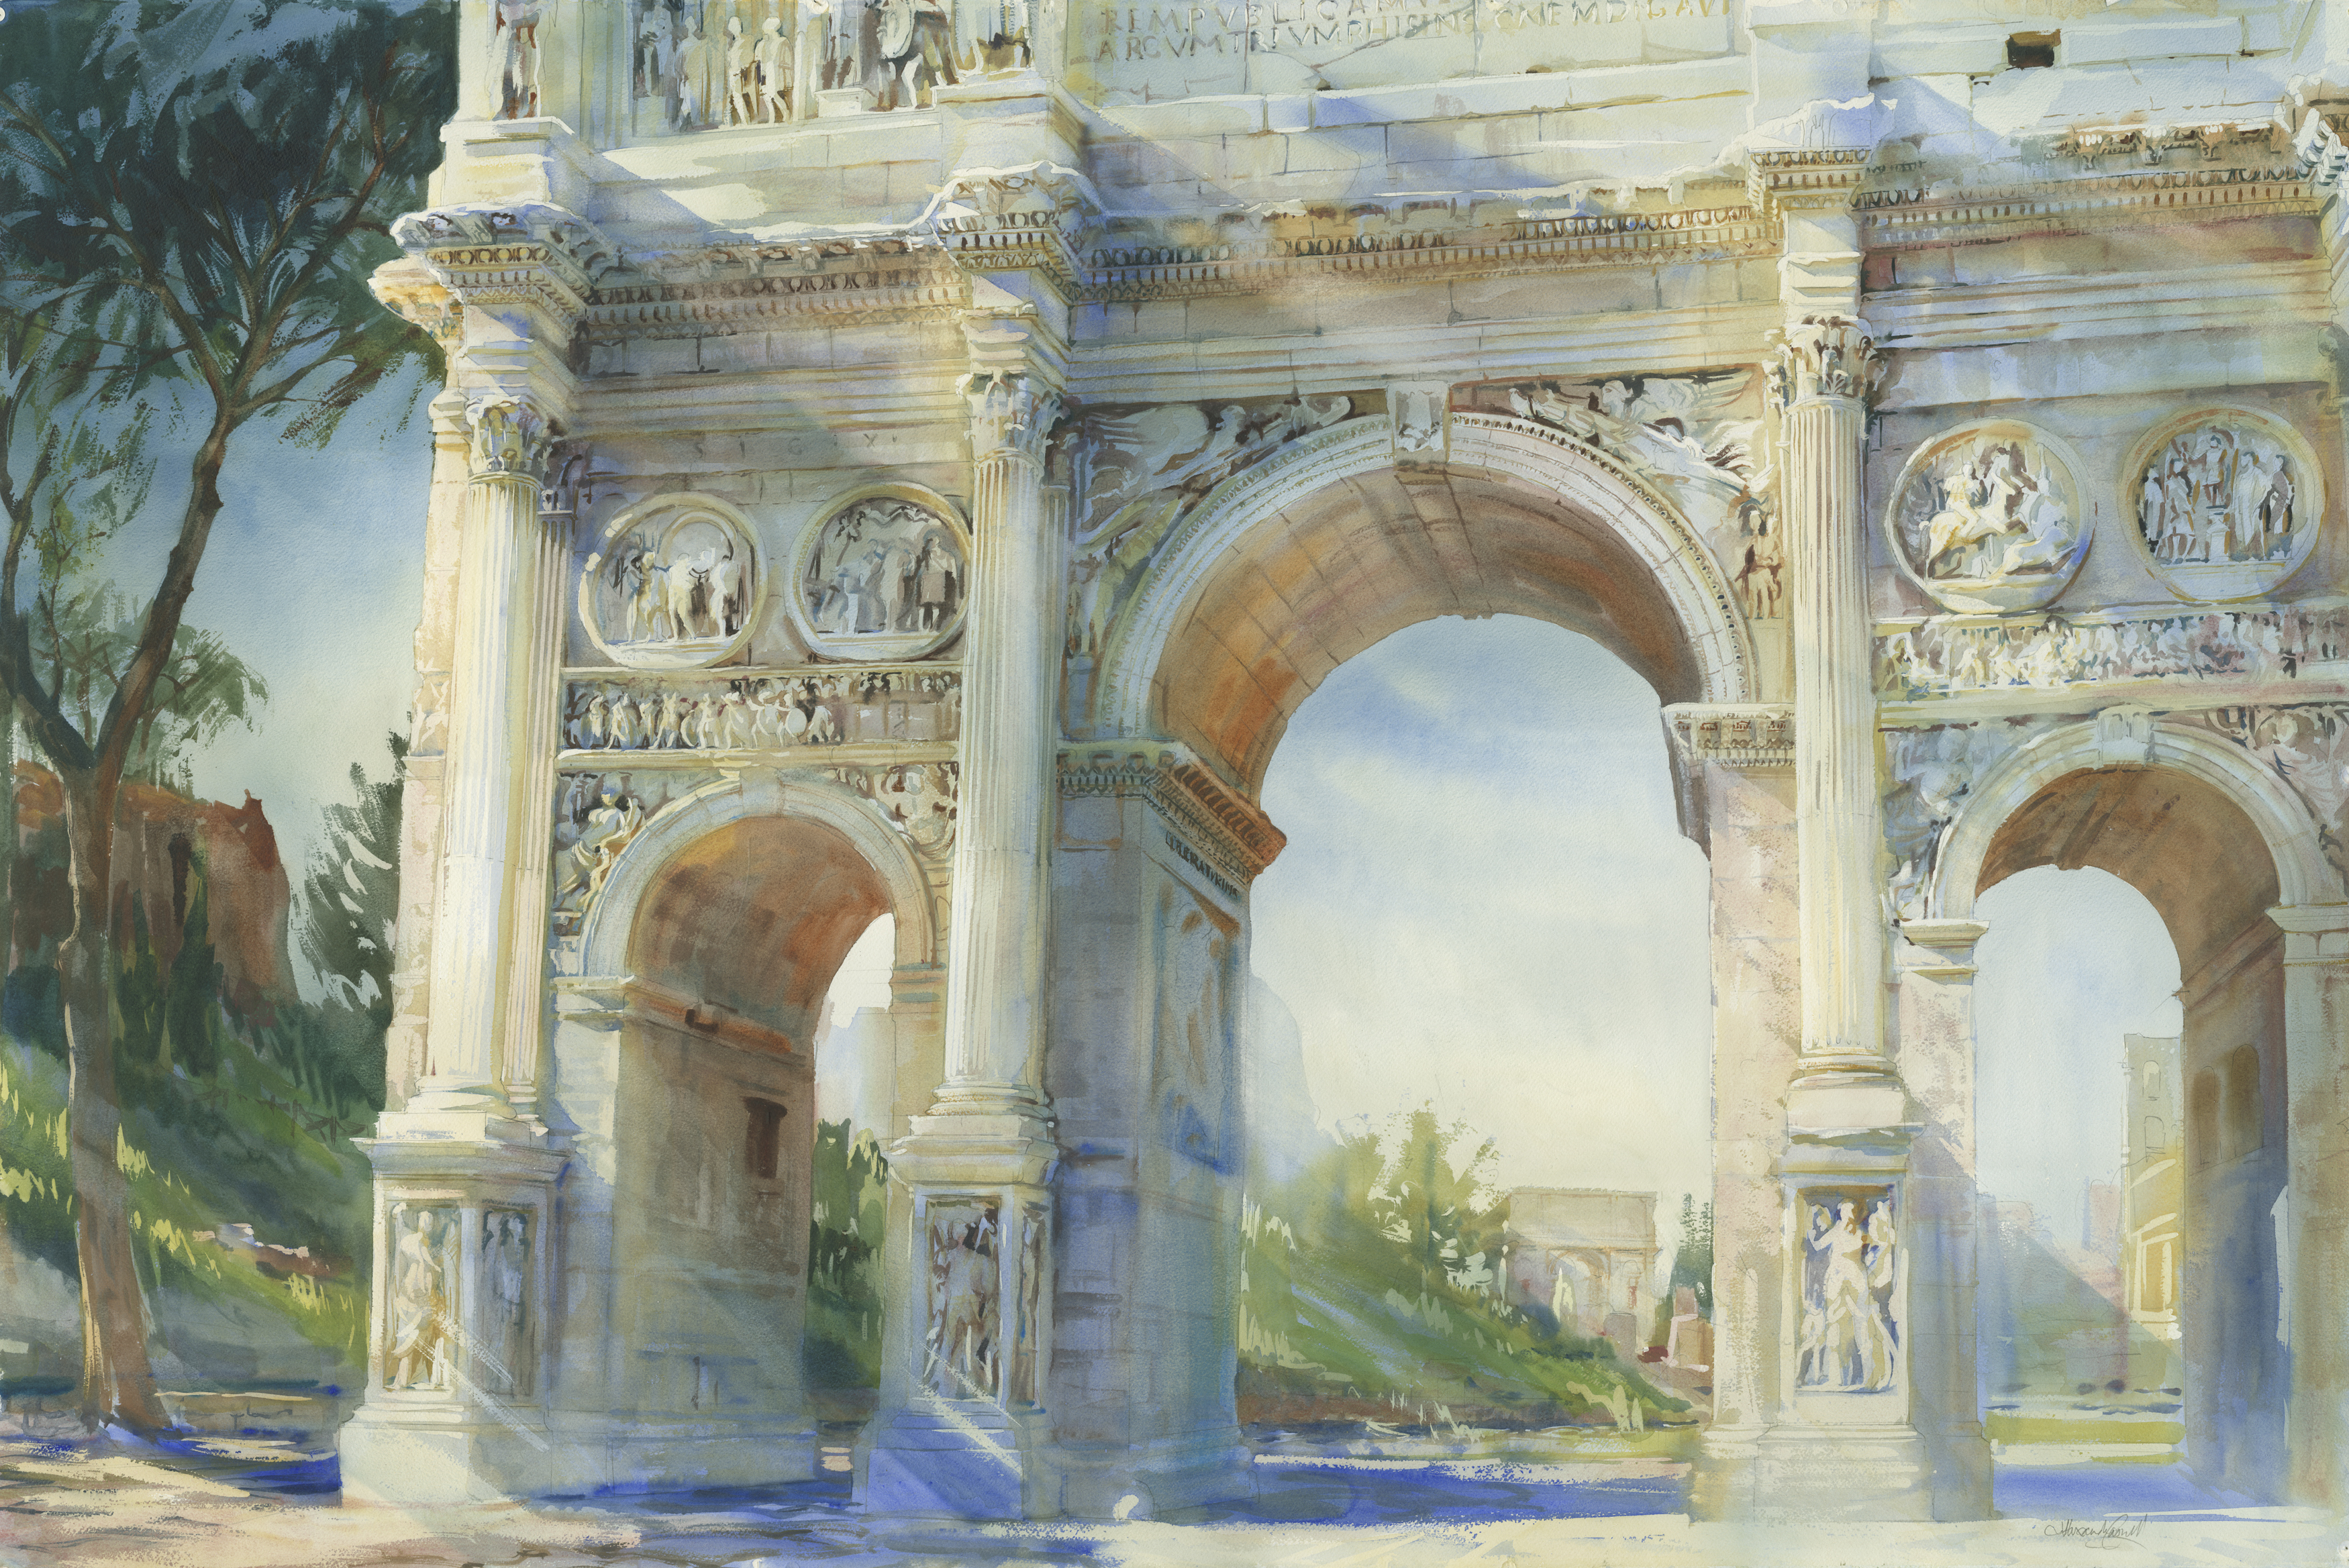 ac-13996d-174-rome-thearchofconstantine-palatinehillandarchoftitus-2012-watercoloronpaper-20x60in